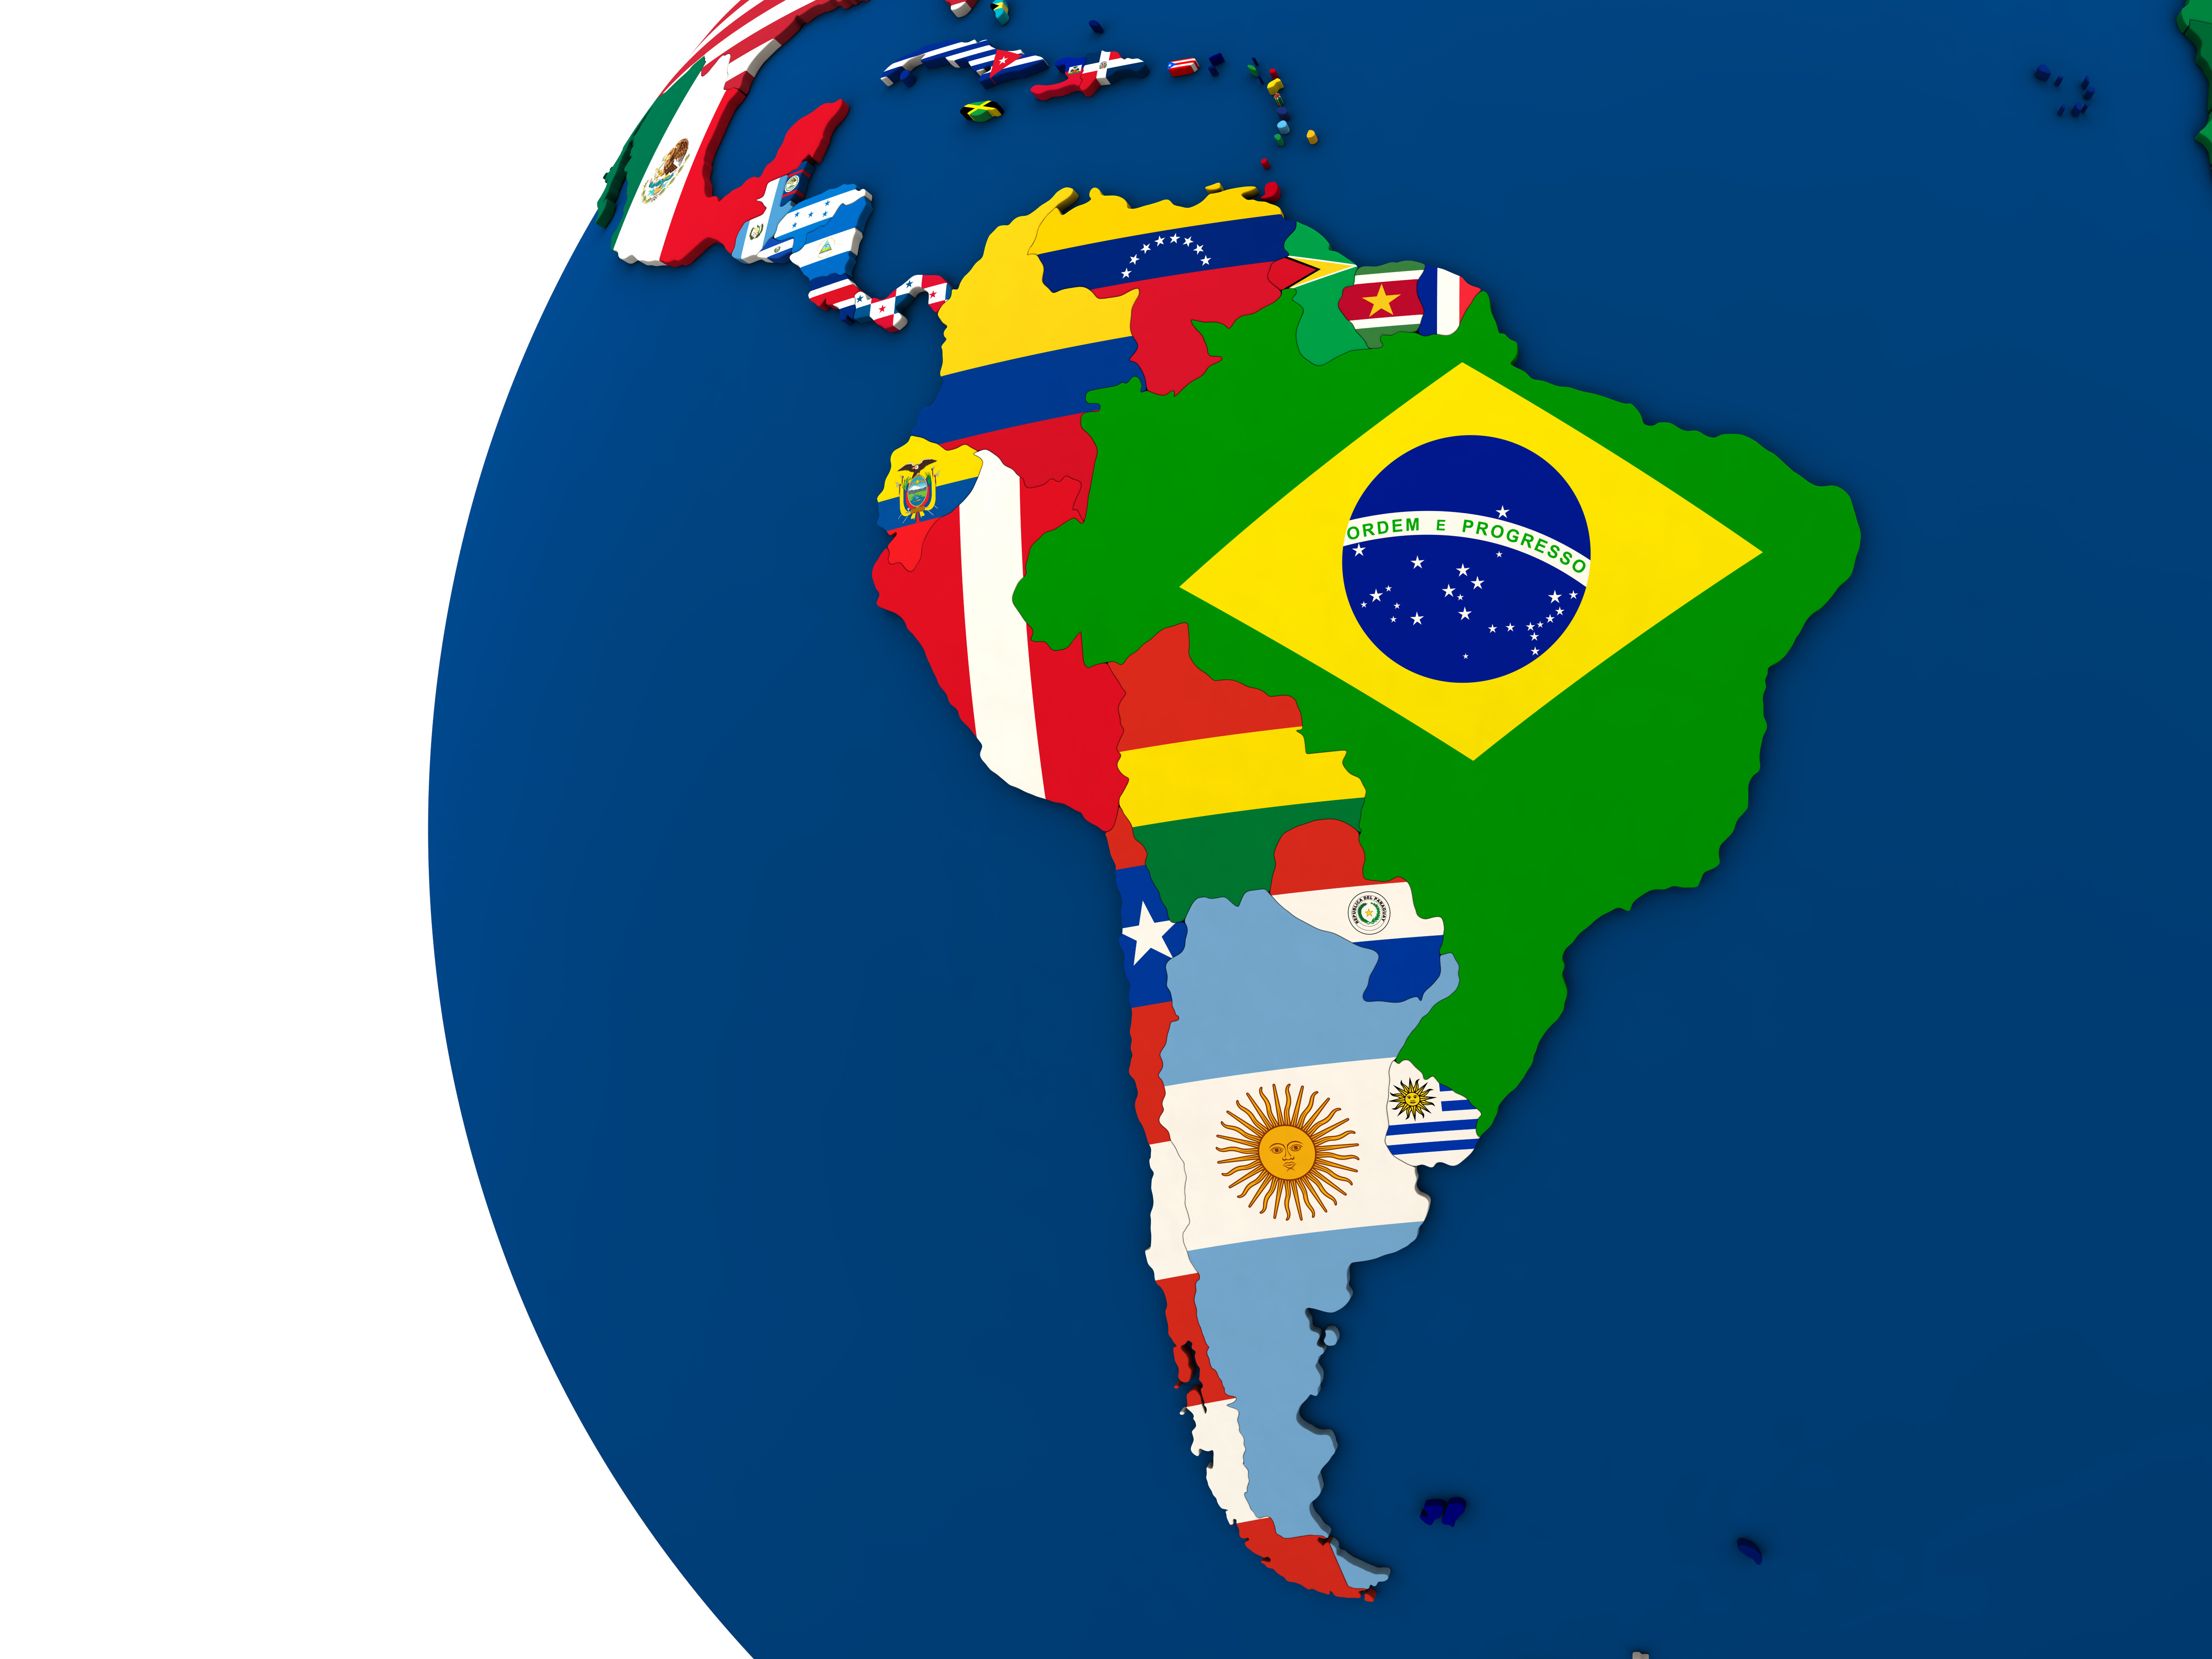 Developing Business in Latin America in 2020